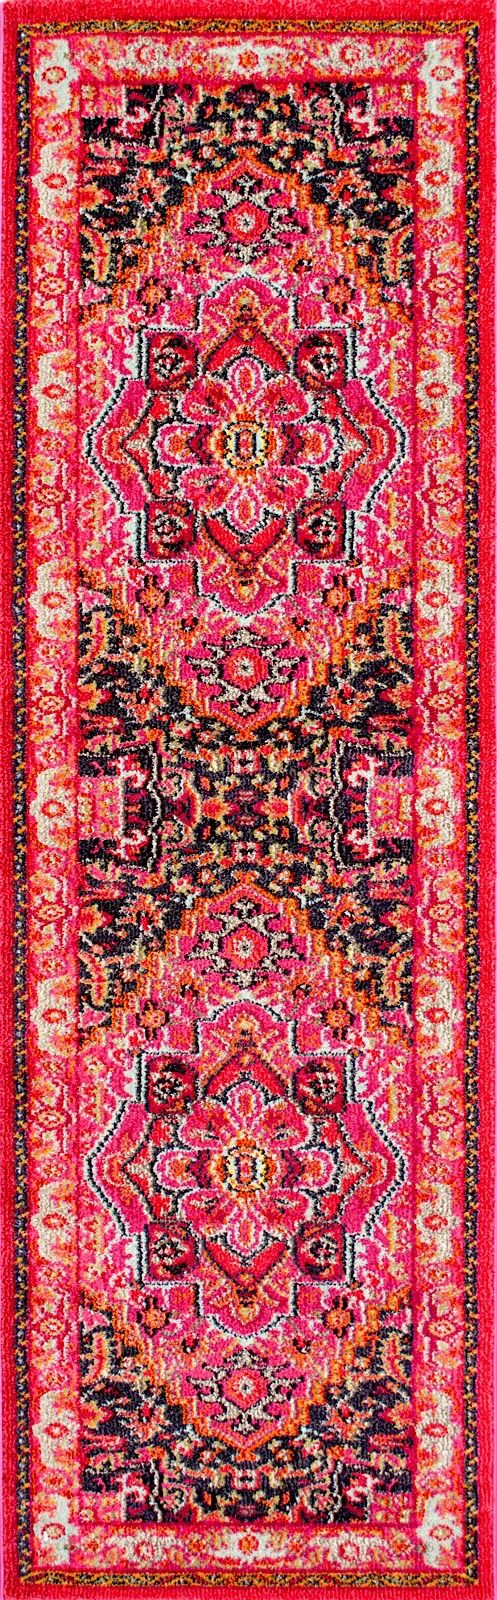 nuloom vintage mackenzie traditional area rug collection